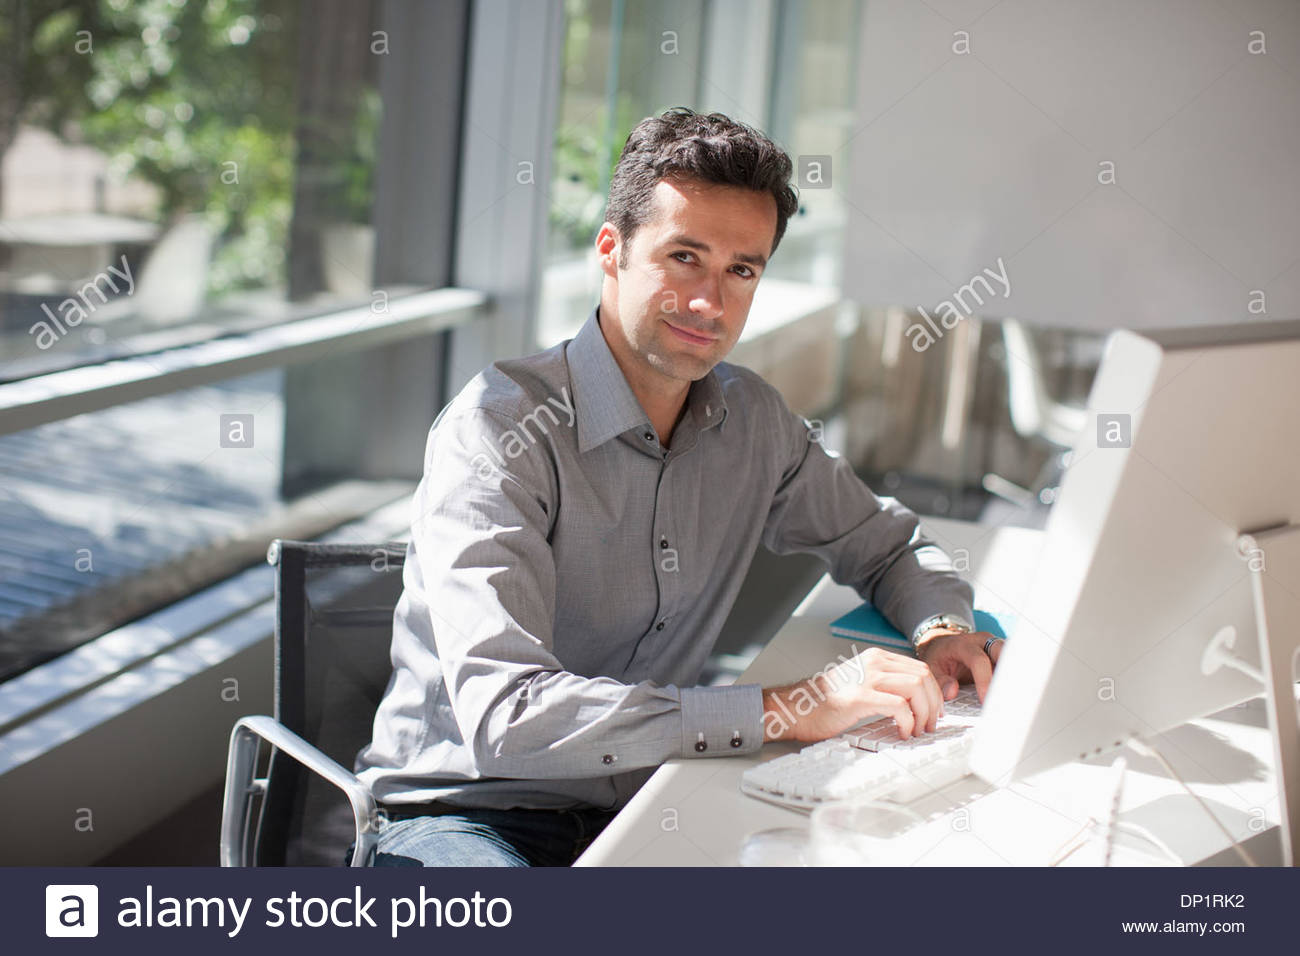 Businessman using computer in office Photo Stock